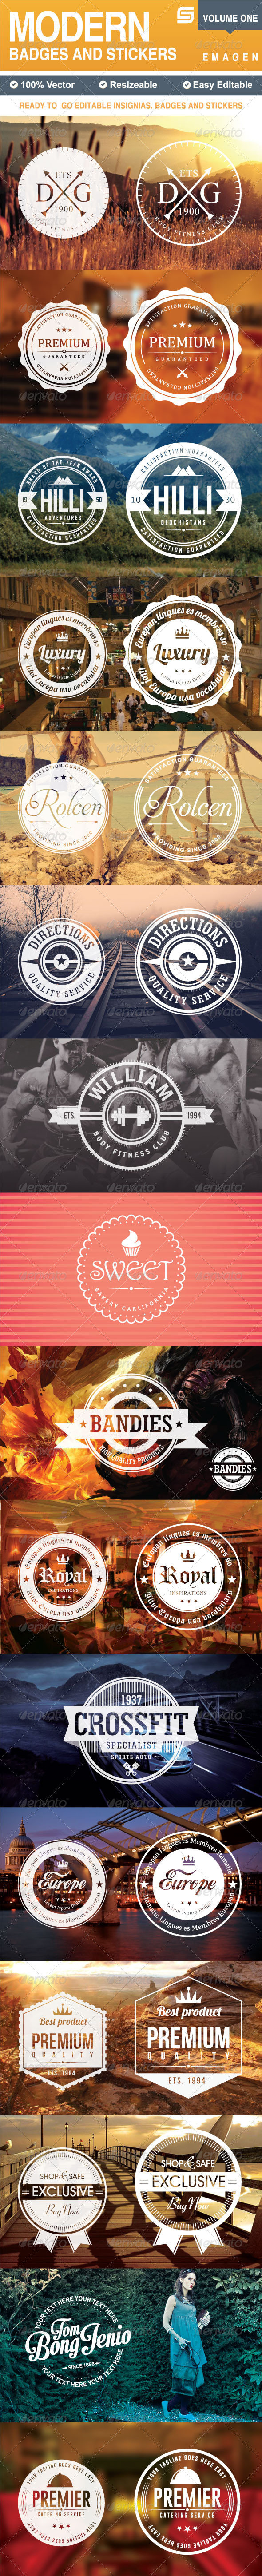 GraphicRiver Modern Badges and Stickers V1 5988970